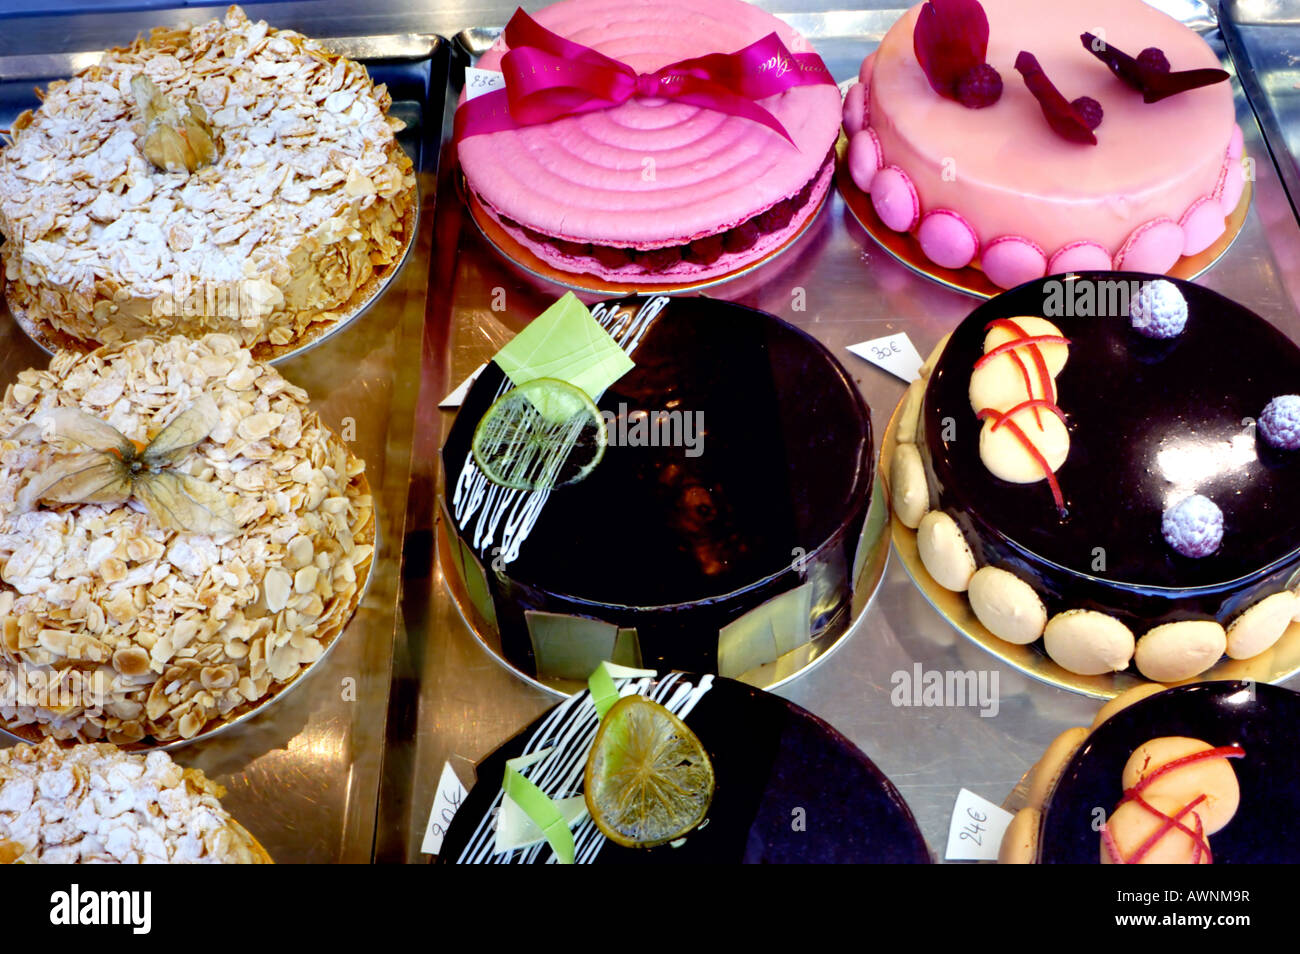 French Food, France Shopping Bakery Store French Cakes 'Gaulupeau' Pastries Display - Stock Image